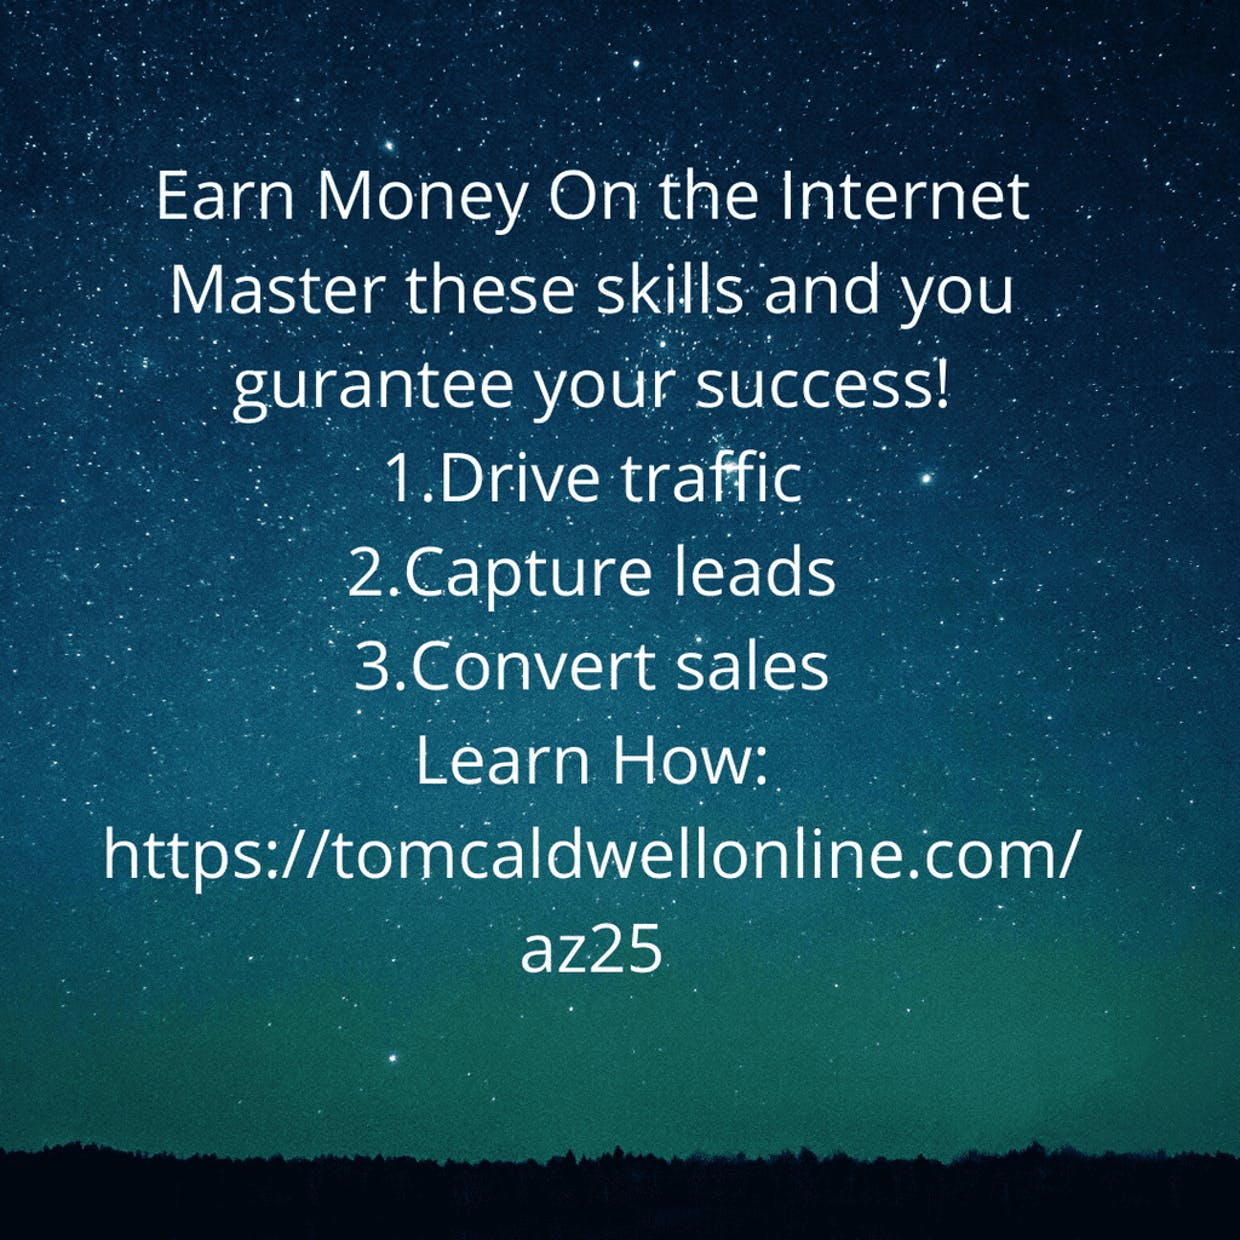 There is a lot of information on the internet telling you how to earn money but the only long term strategy is through email follow up. Learn the truth about building online income at